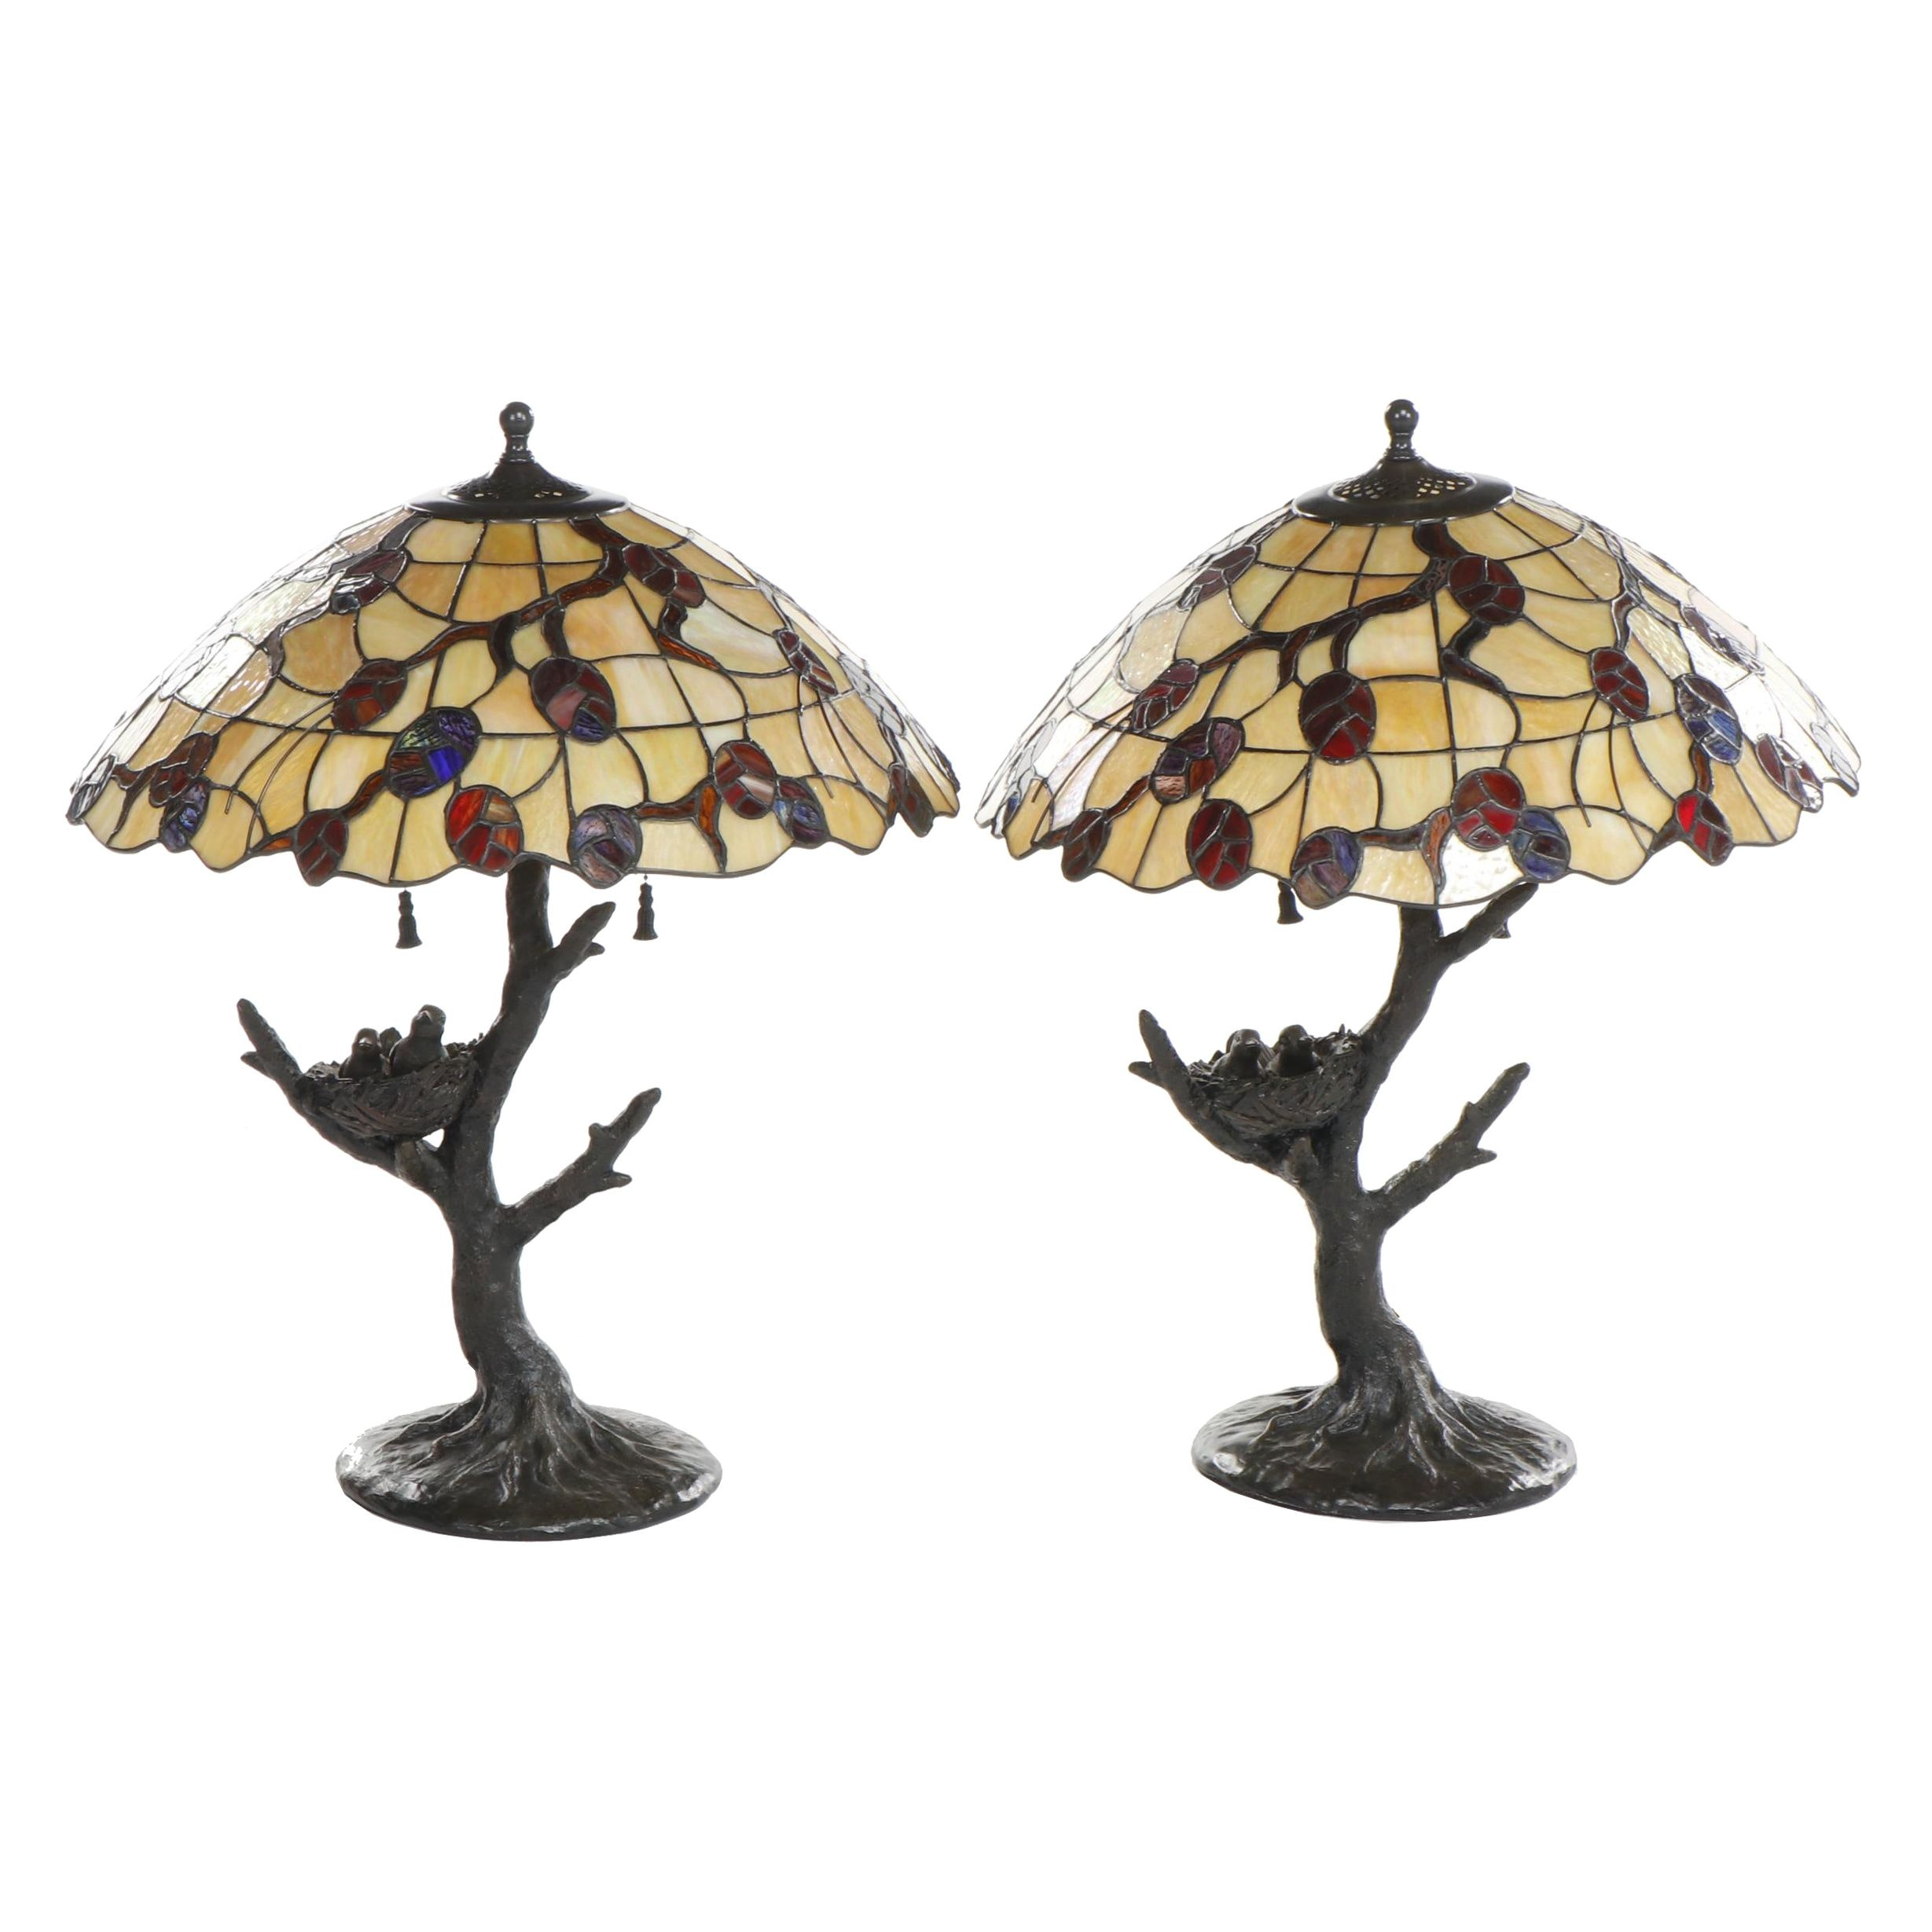 Metal Bird's Nest Tree Form Table Lamps with Slag and Stained Glass Shades